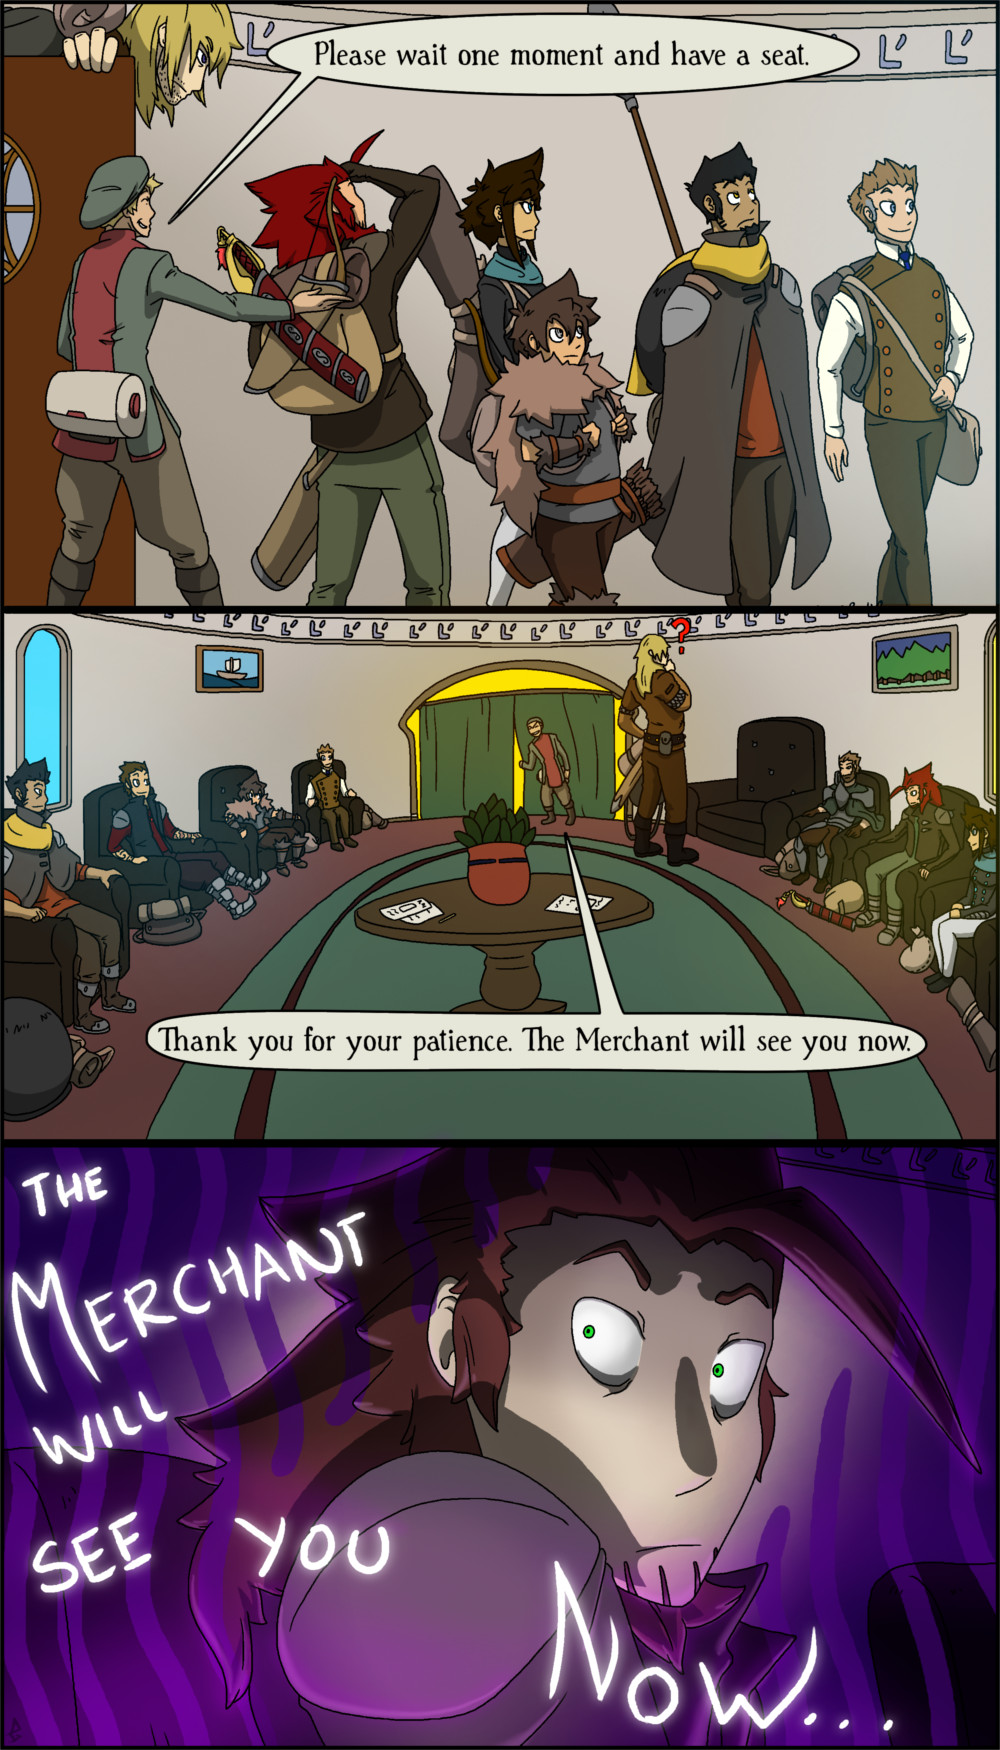 Zack is still uneasy from his last meeting with the Merchant.